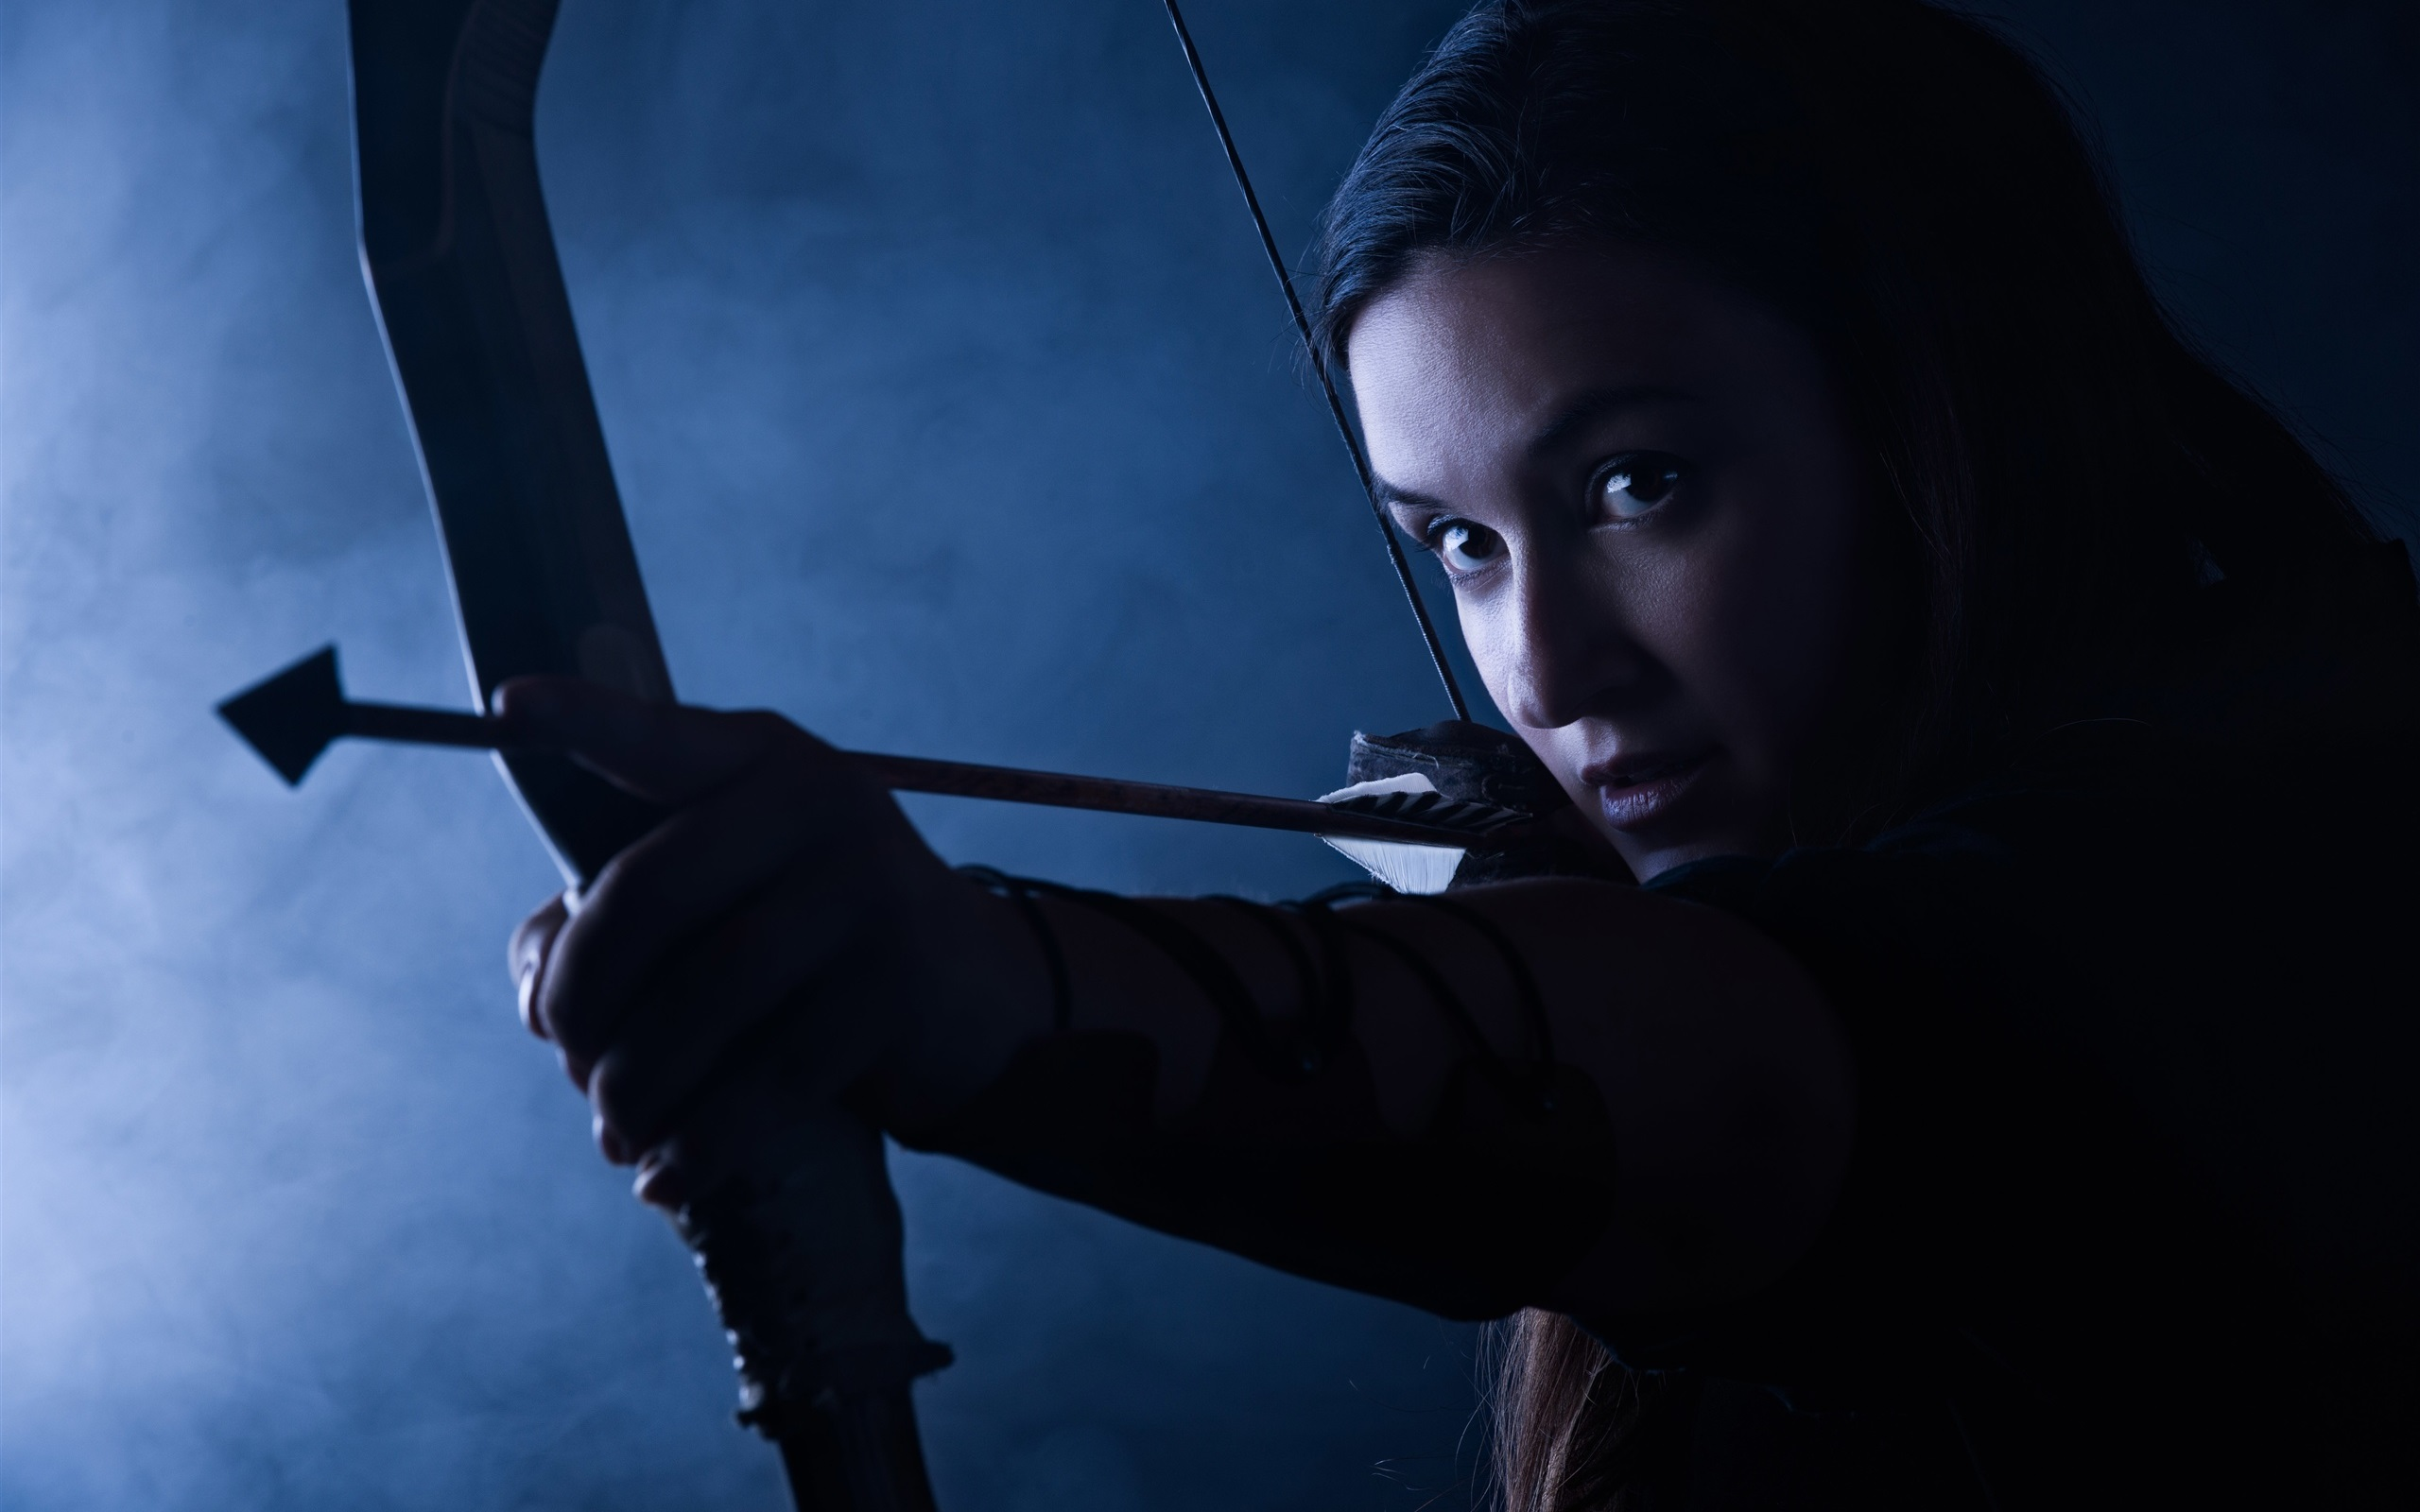 Wallpaper Beautiful Archer Girl Bow Arrow 2560x1600 HD Picture Image